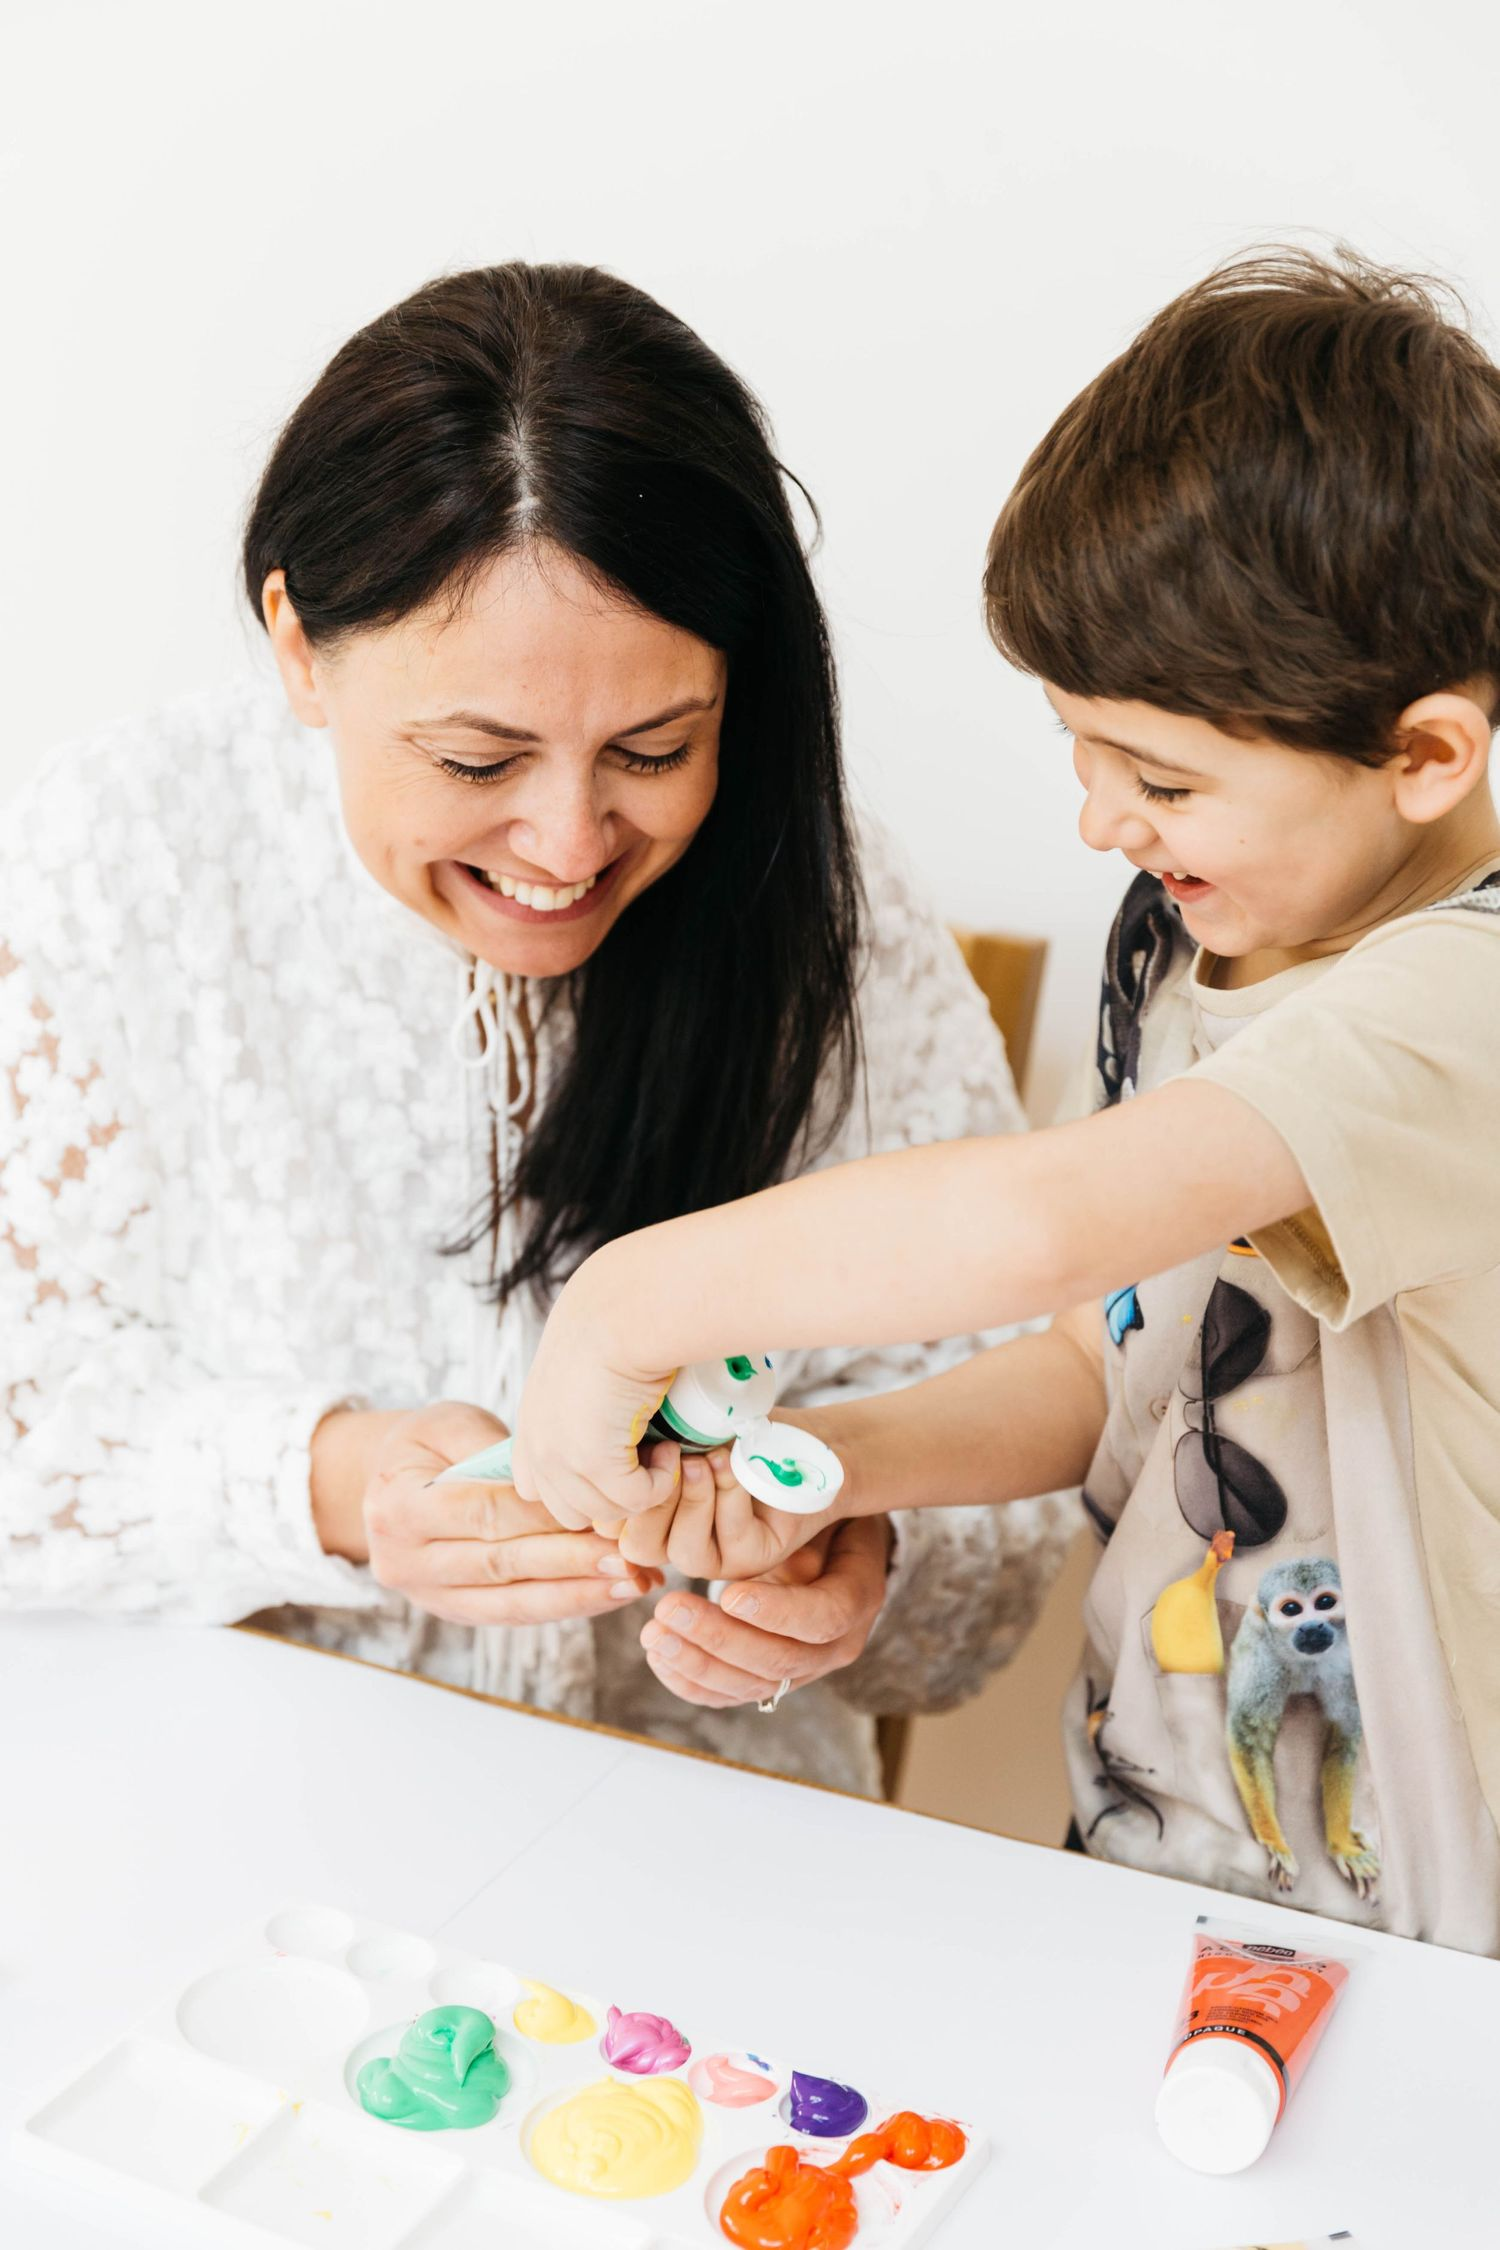 mum with dark hair squeezing paint with son smiling